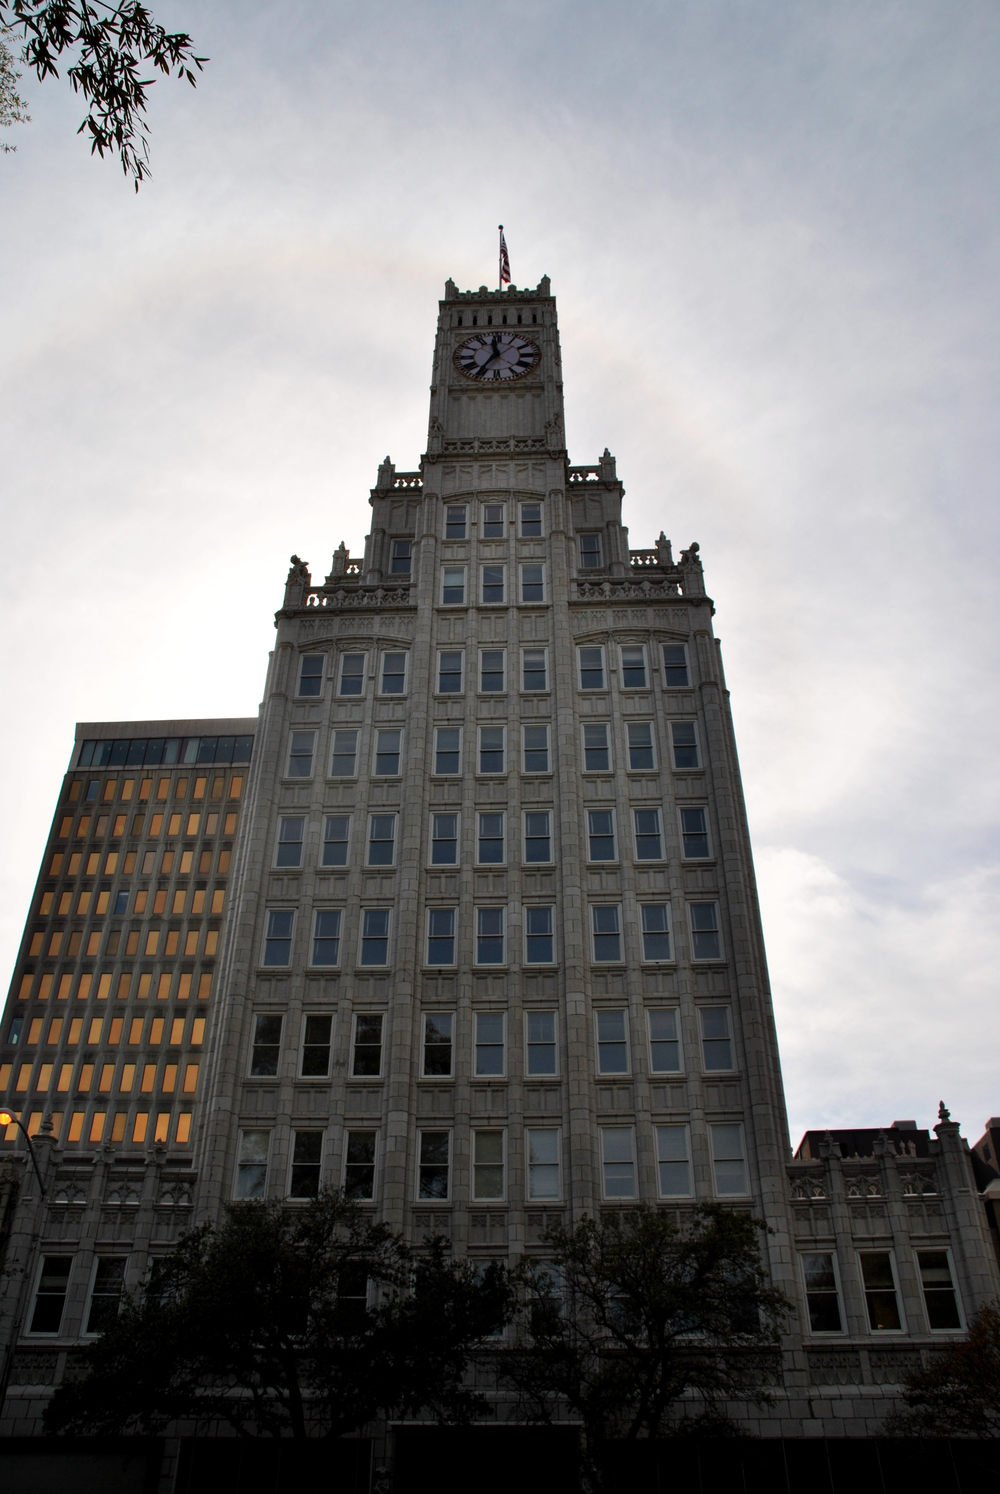 Lore holds it that Eudora Welty's father was one of the architects of this gothic tower.